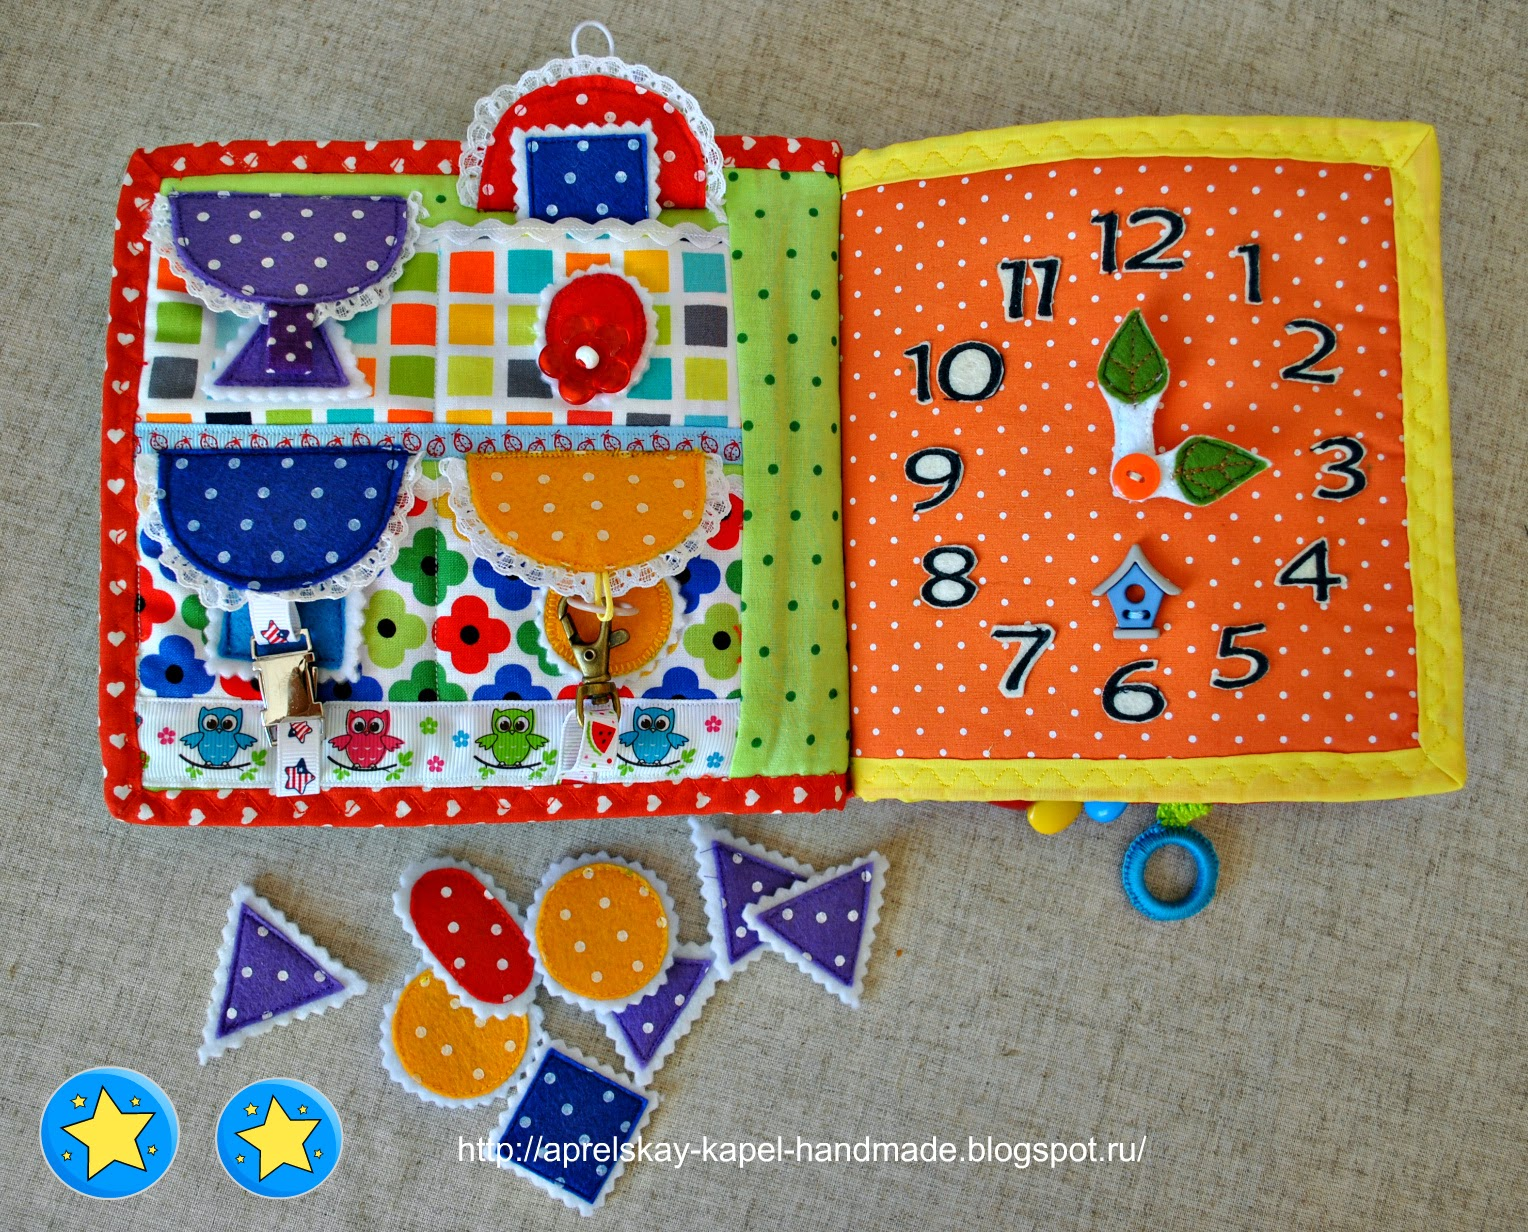 busybook, quiey book, toddler book, craft book for kids, activity toy, soft book, baby book, staffed toys, felt, feltro. fabric toys. книжка развивайка, развивающая книжка, софт бук, подарок на годик, для малышей, обучающая книжка,